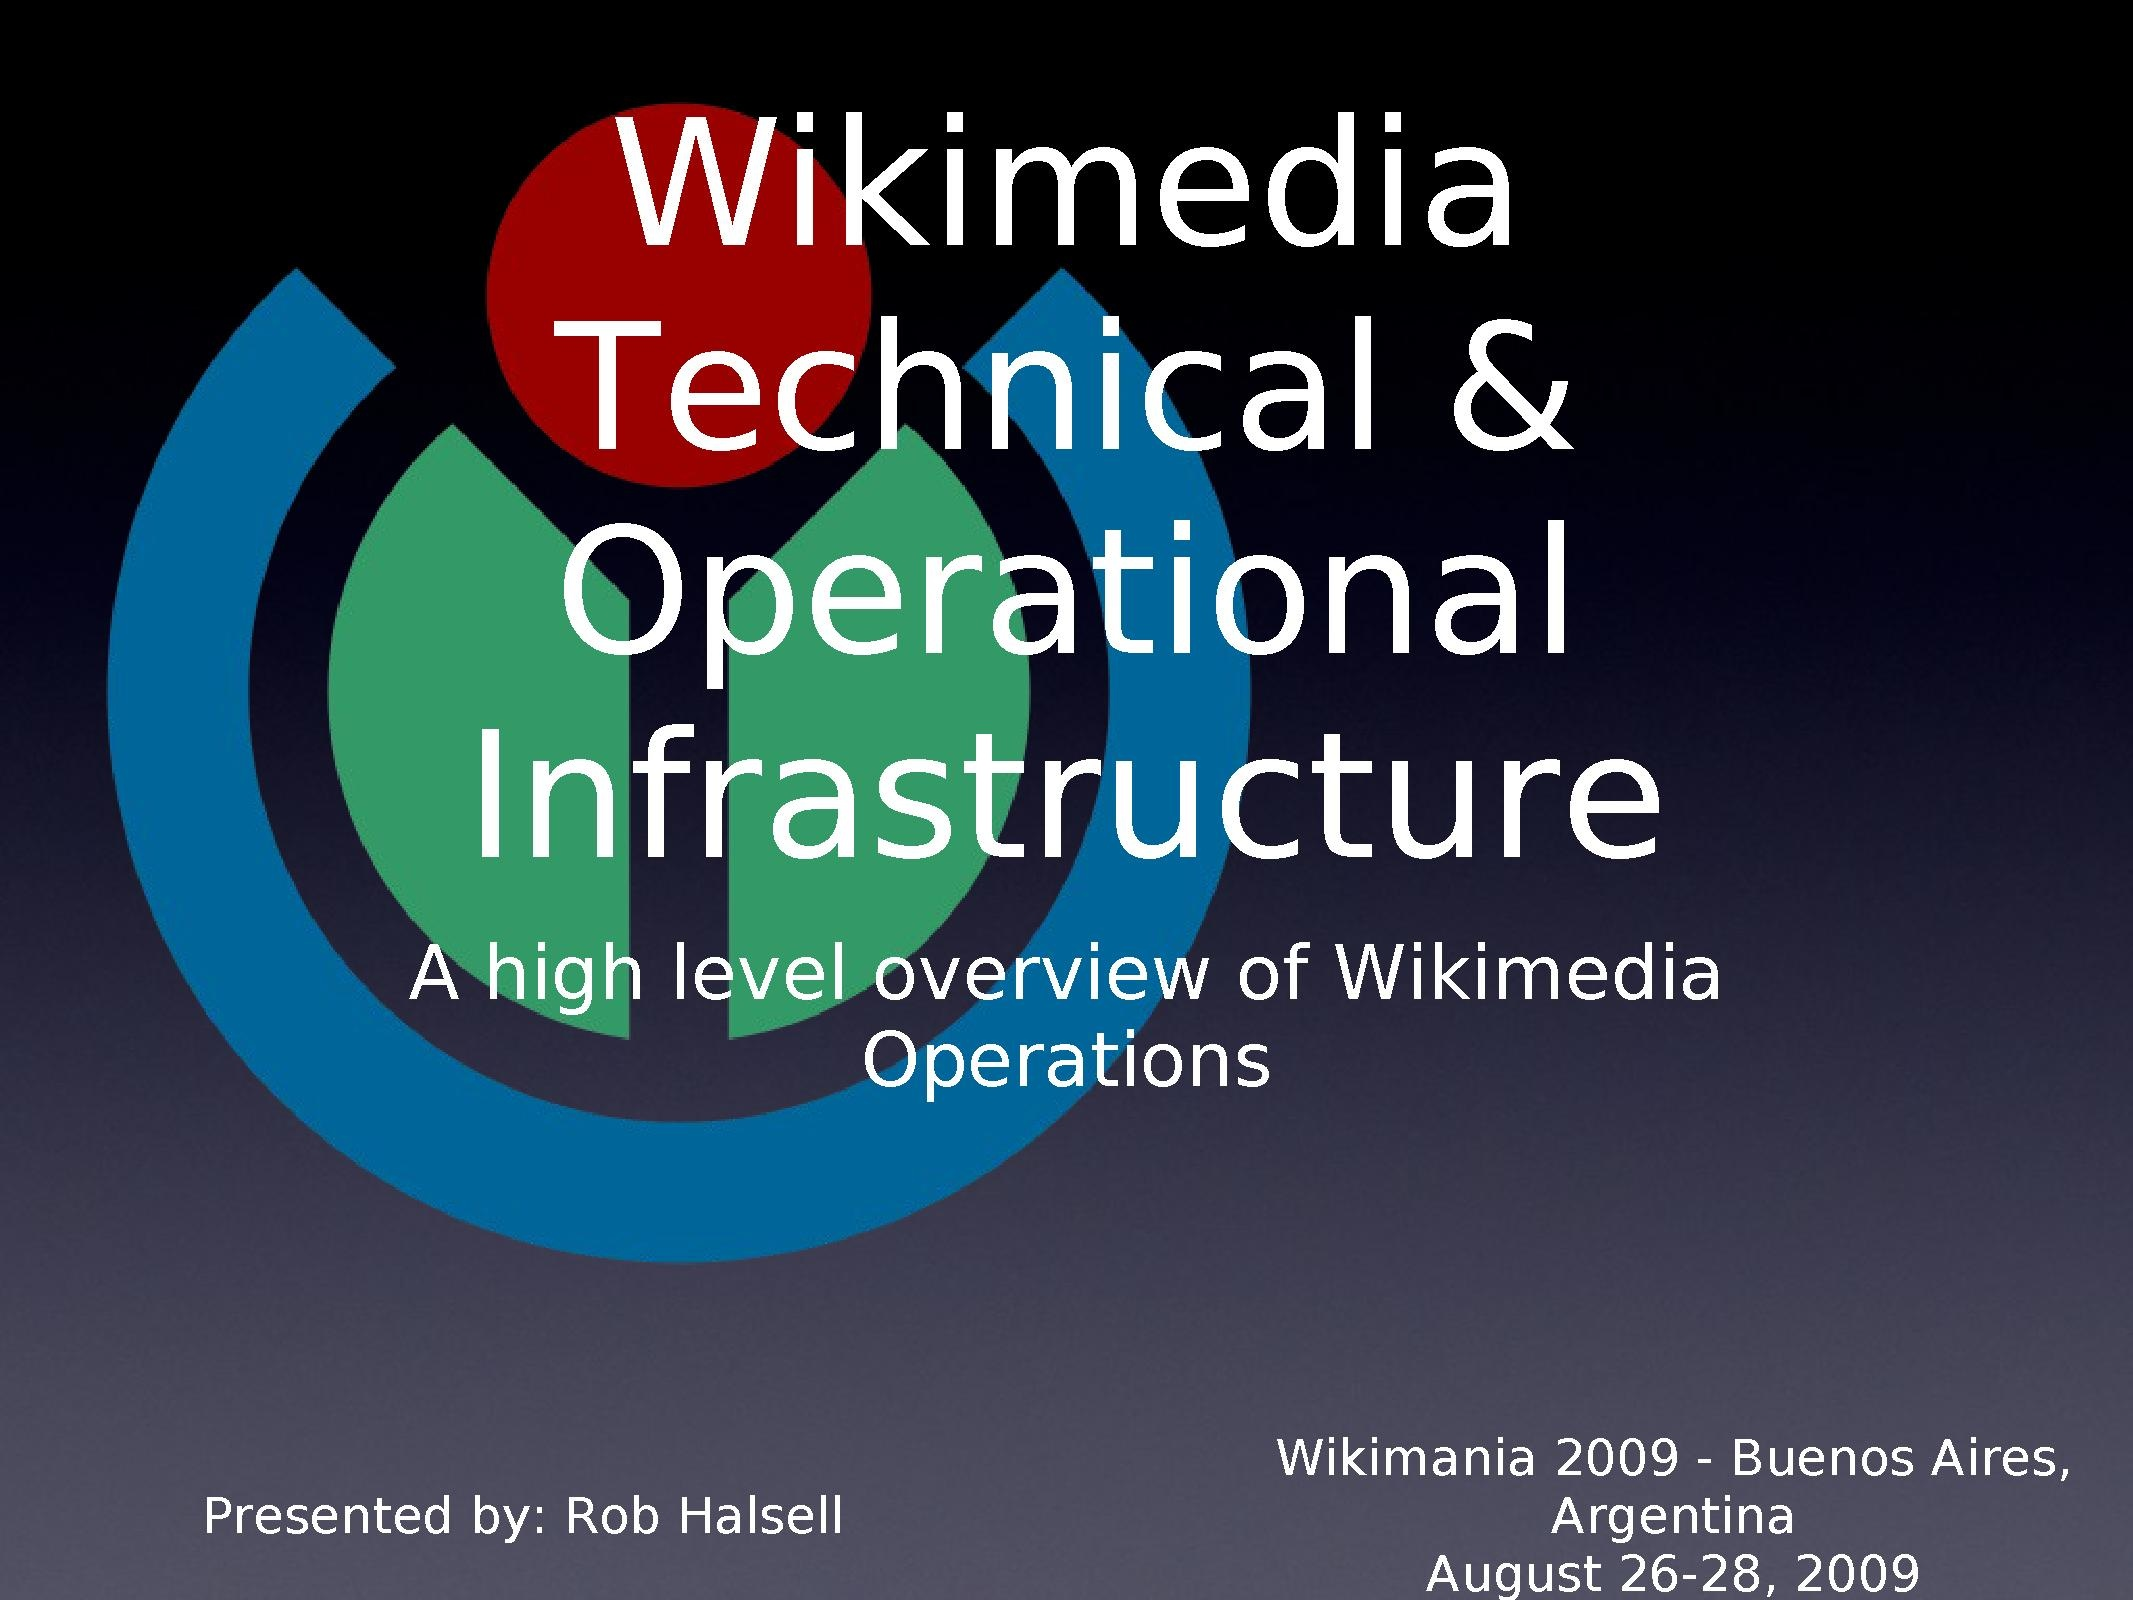 Rob Halsell - Wikimania 2009 - Wikimedia Operations & Technical Overview.pdf